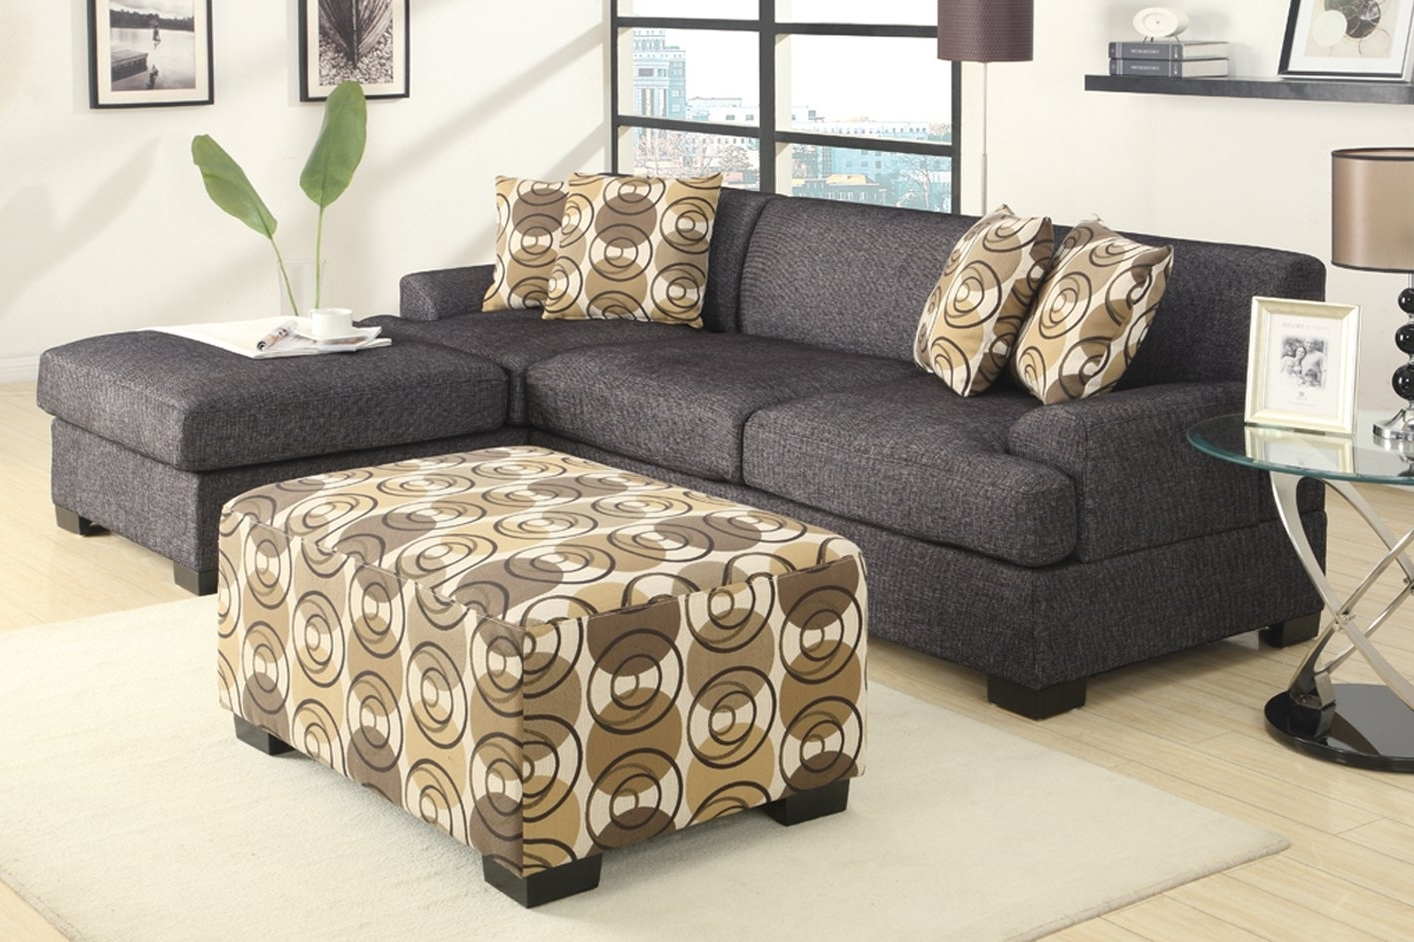 2018 Fabric Chaise Lounges Pertaining To Grey Fabric Chaise Lounge – Steal A Sofa Furniture Outlet Los (View 2 of 15)